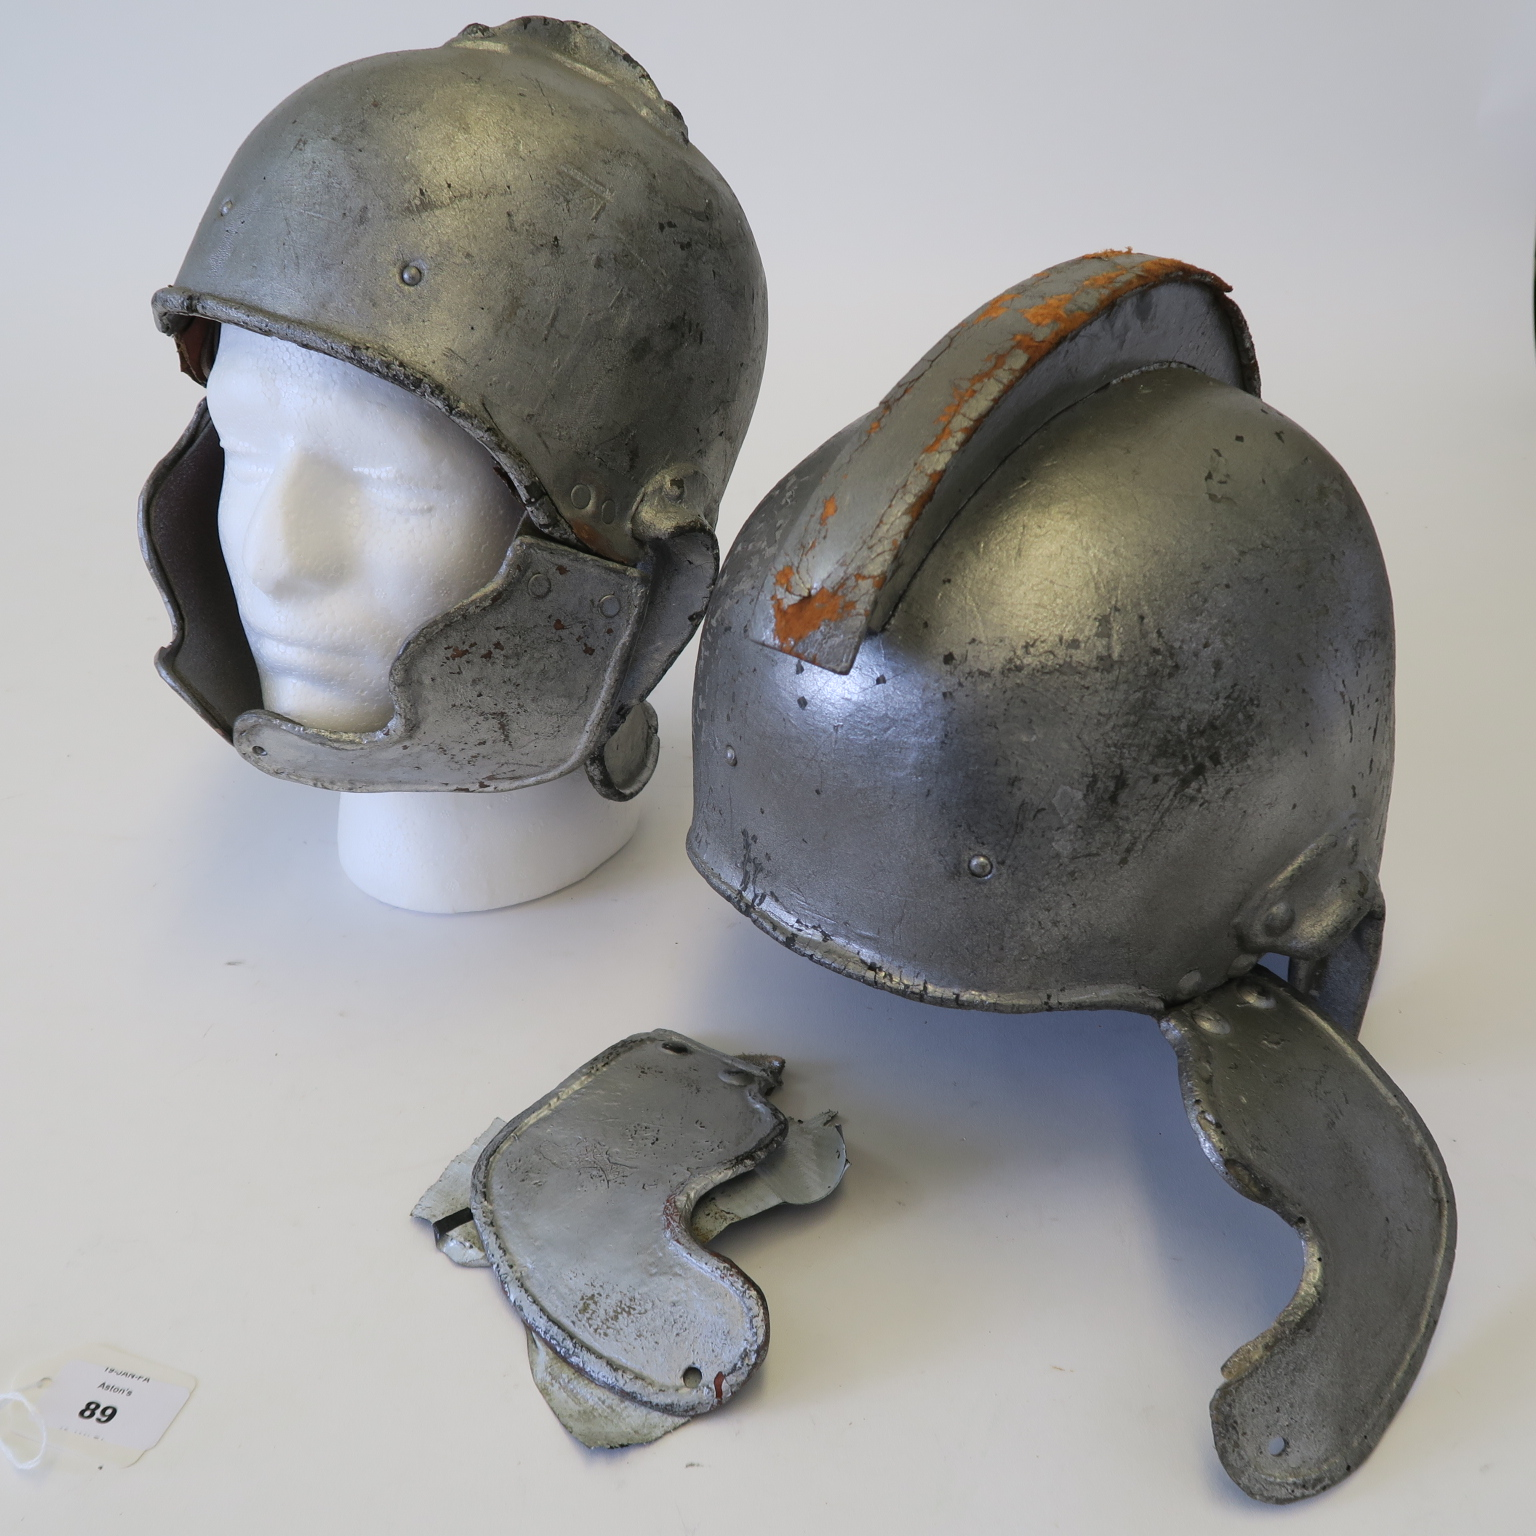 Lot 43 - The Greatest Story Ever Told screen used Two Roman style movie prop helmets - silver helmets with